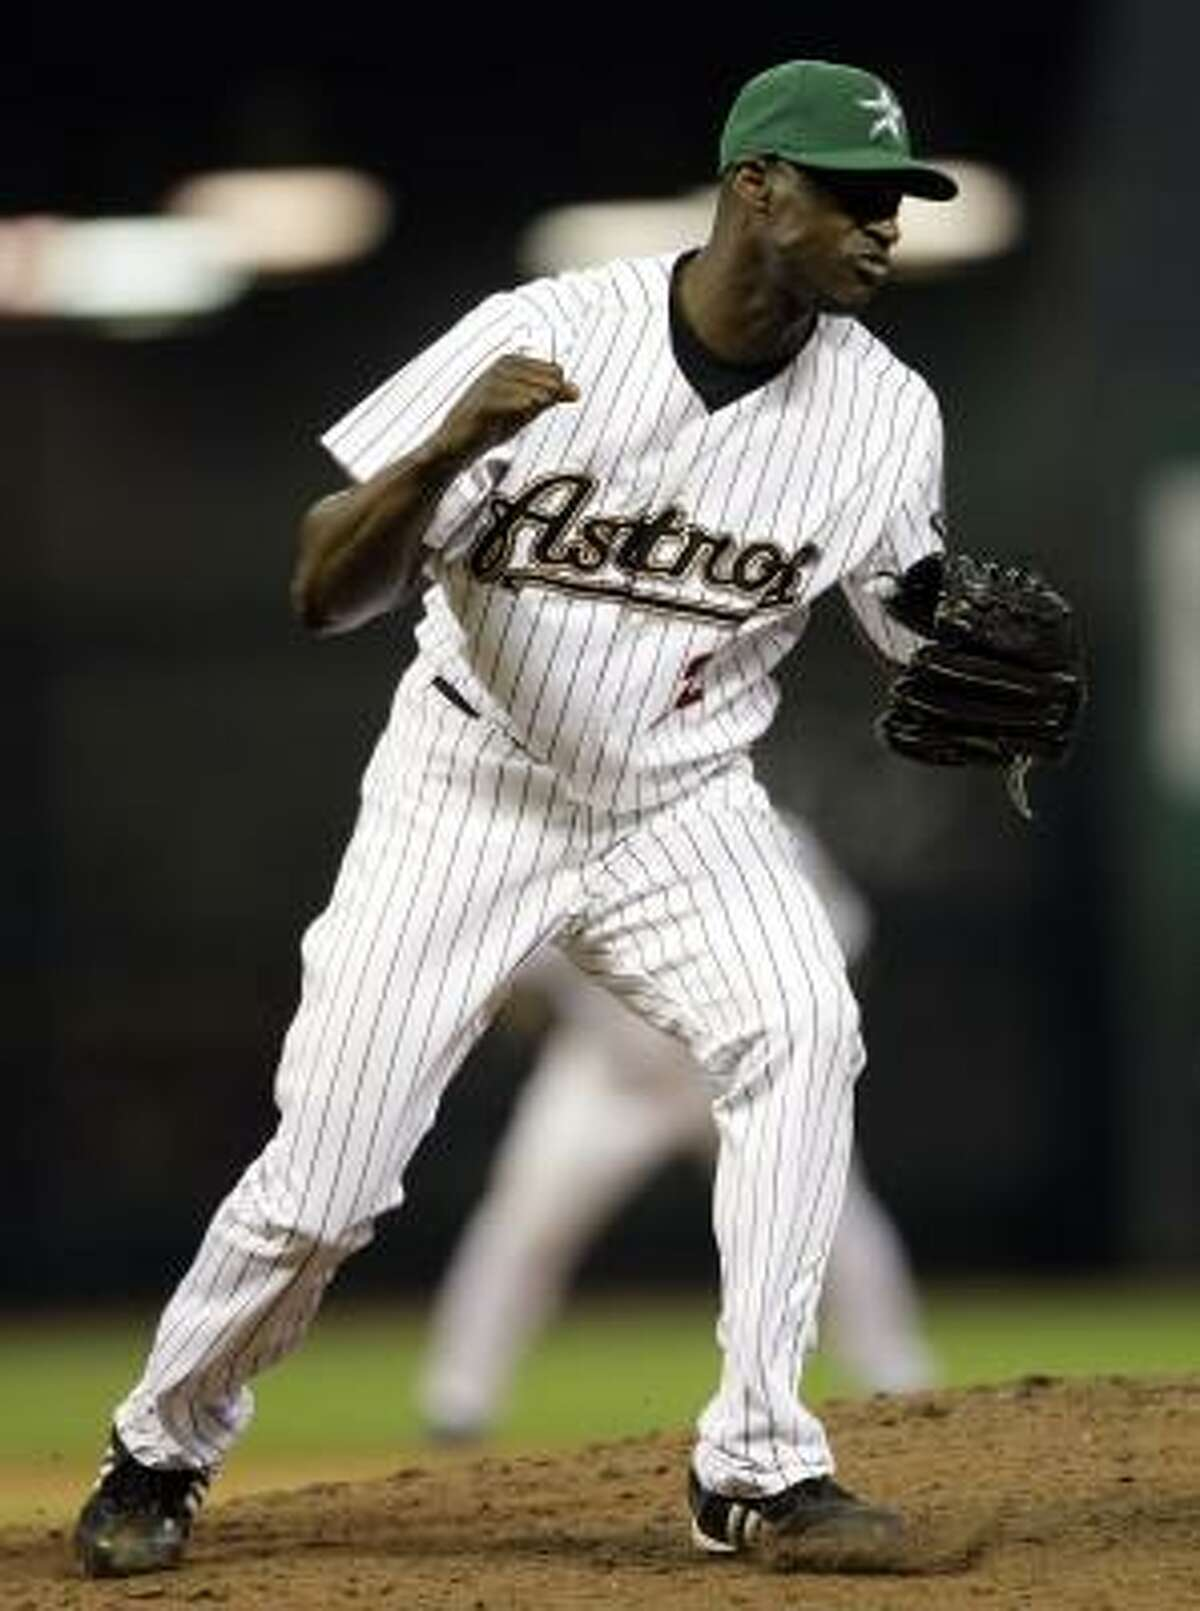 Astros pitcher LaTroy Hawkins reacts after striking out Orlando Hudson to end the game.